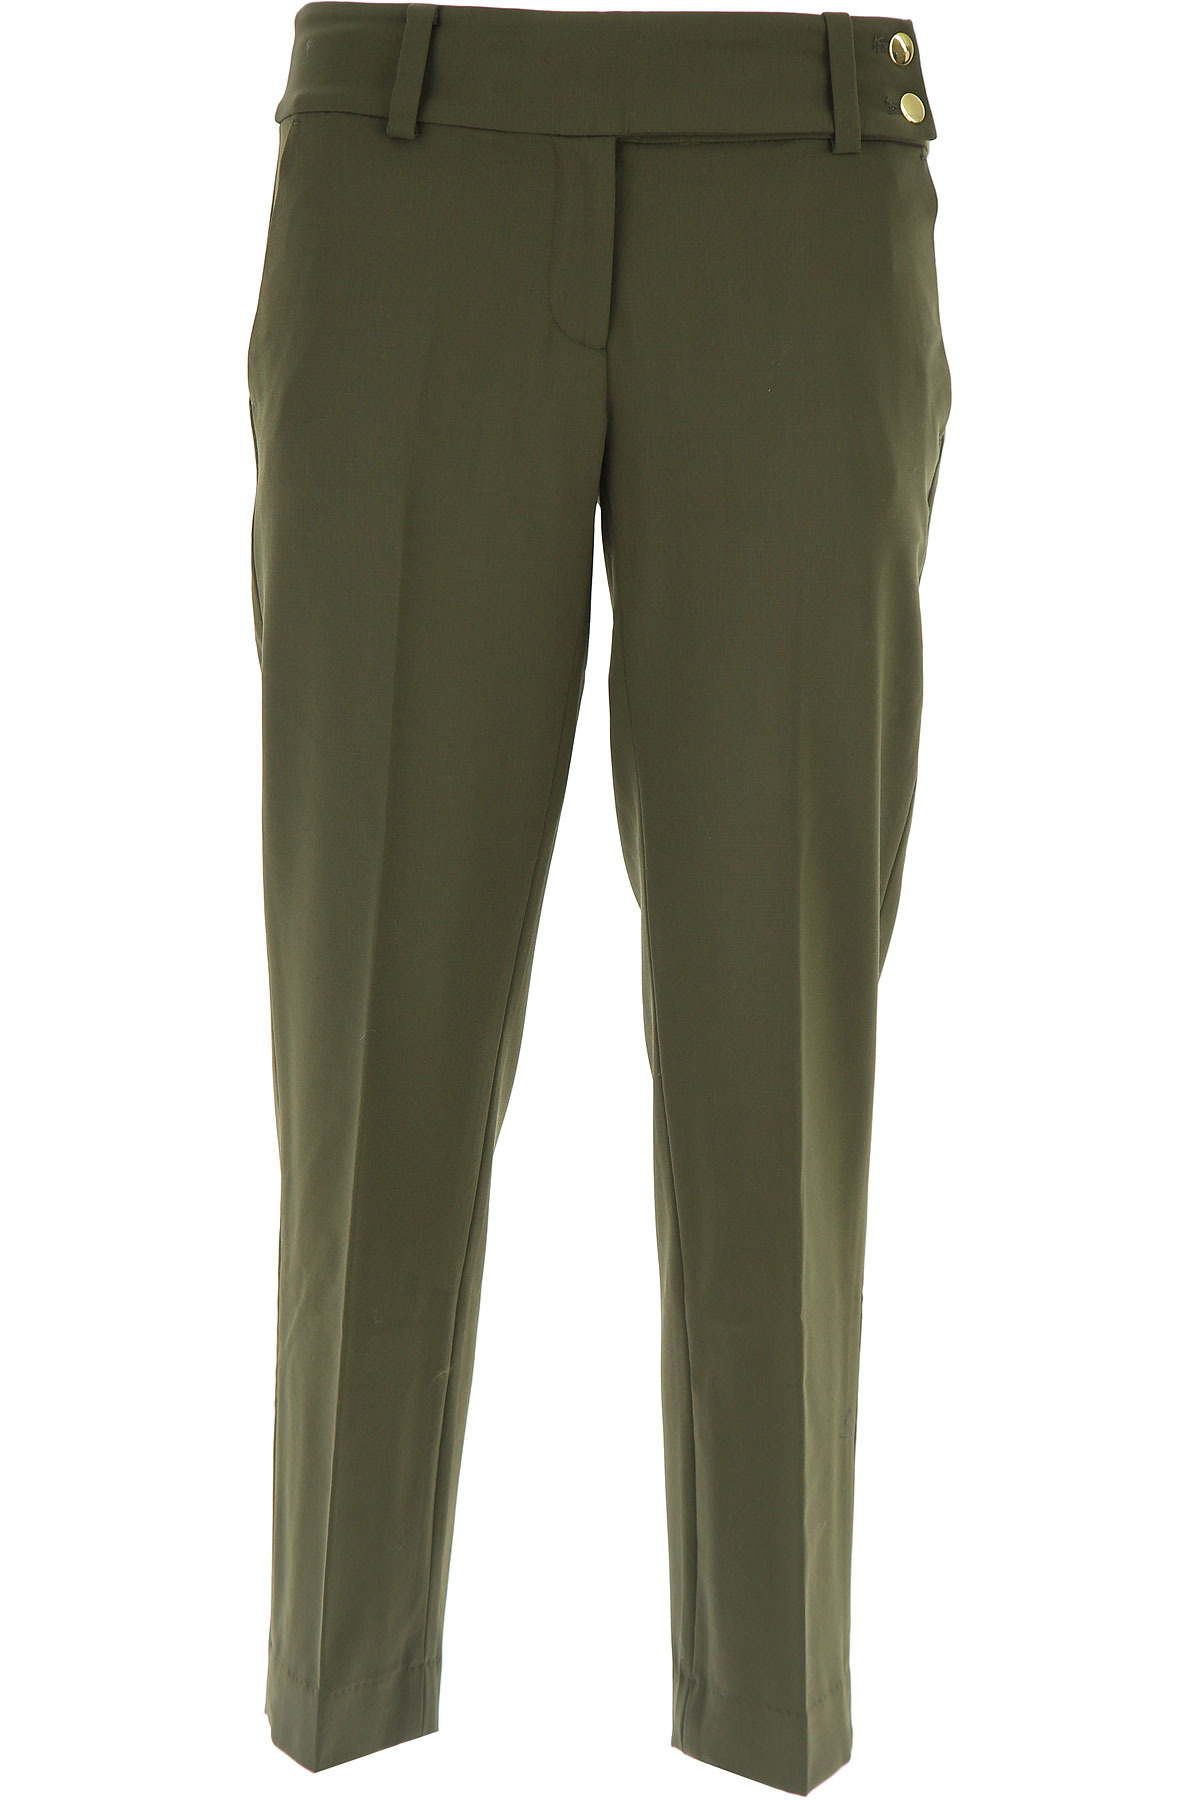 Michael Kors Pants for Women On Sale in Outlet, Green, Wool, 2019, 24 32